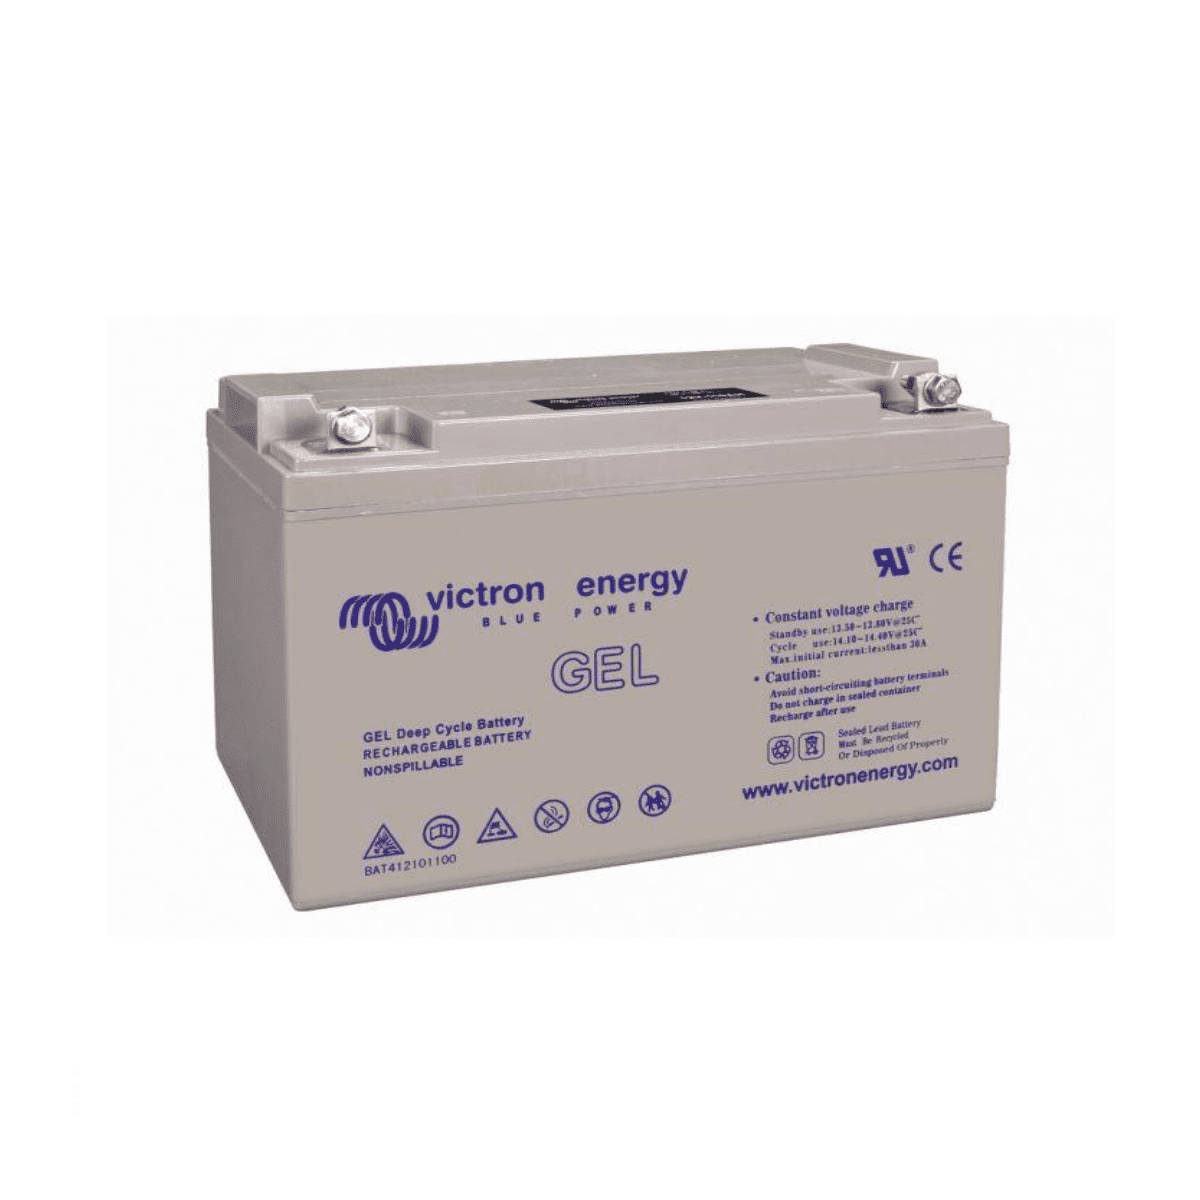 Victron 12V 220Ah GEL Deep Cycle Battery